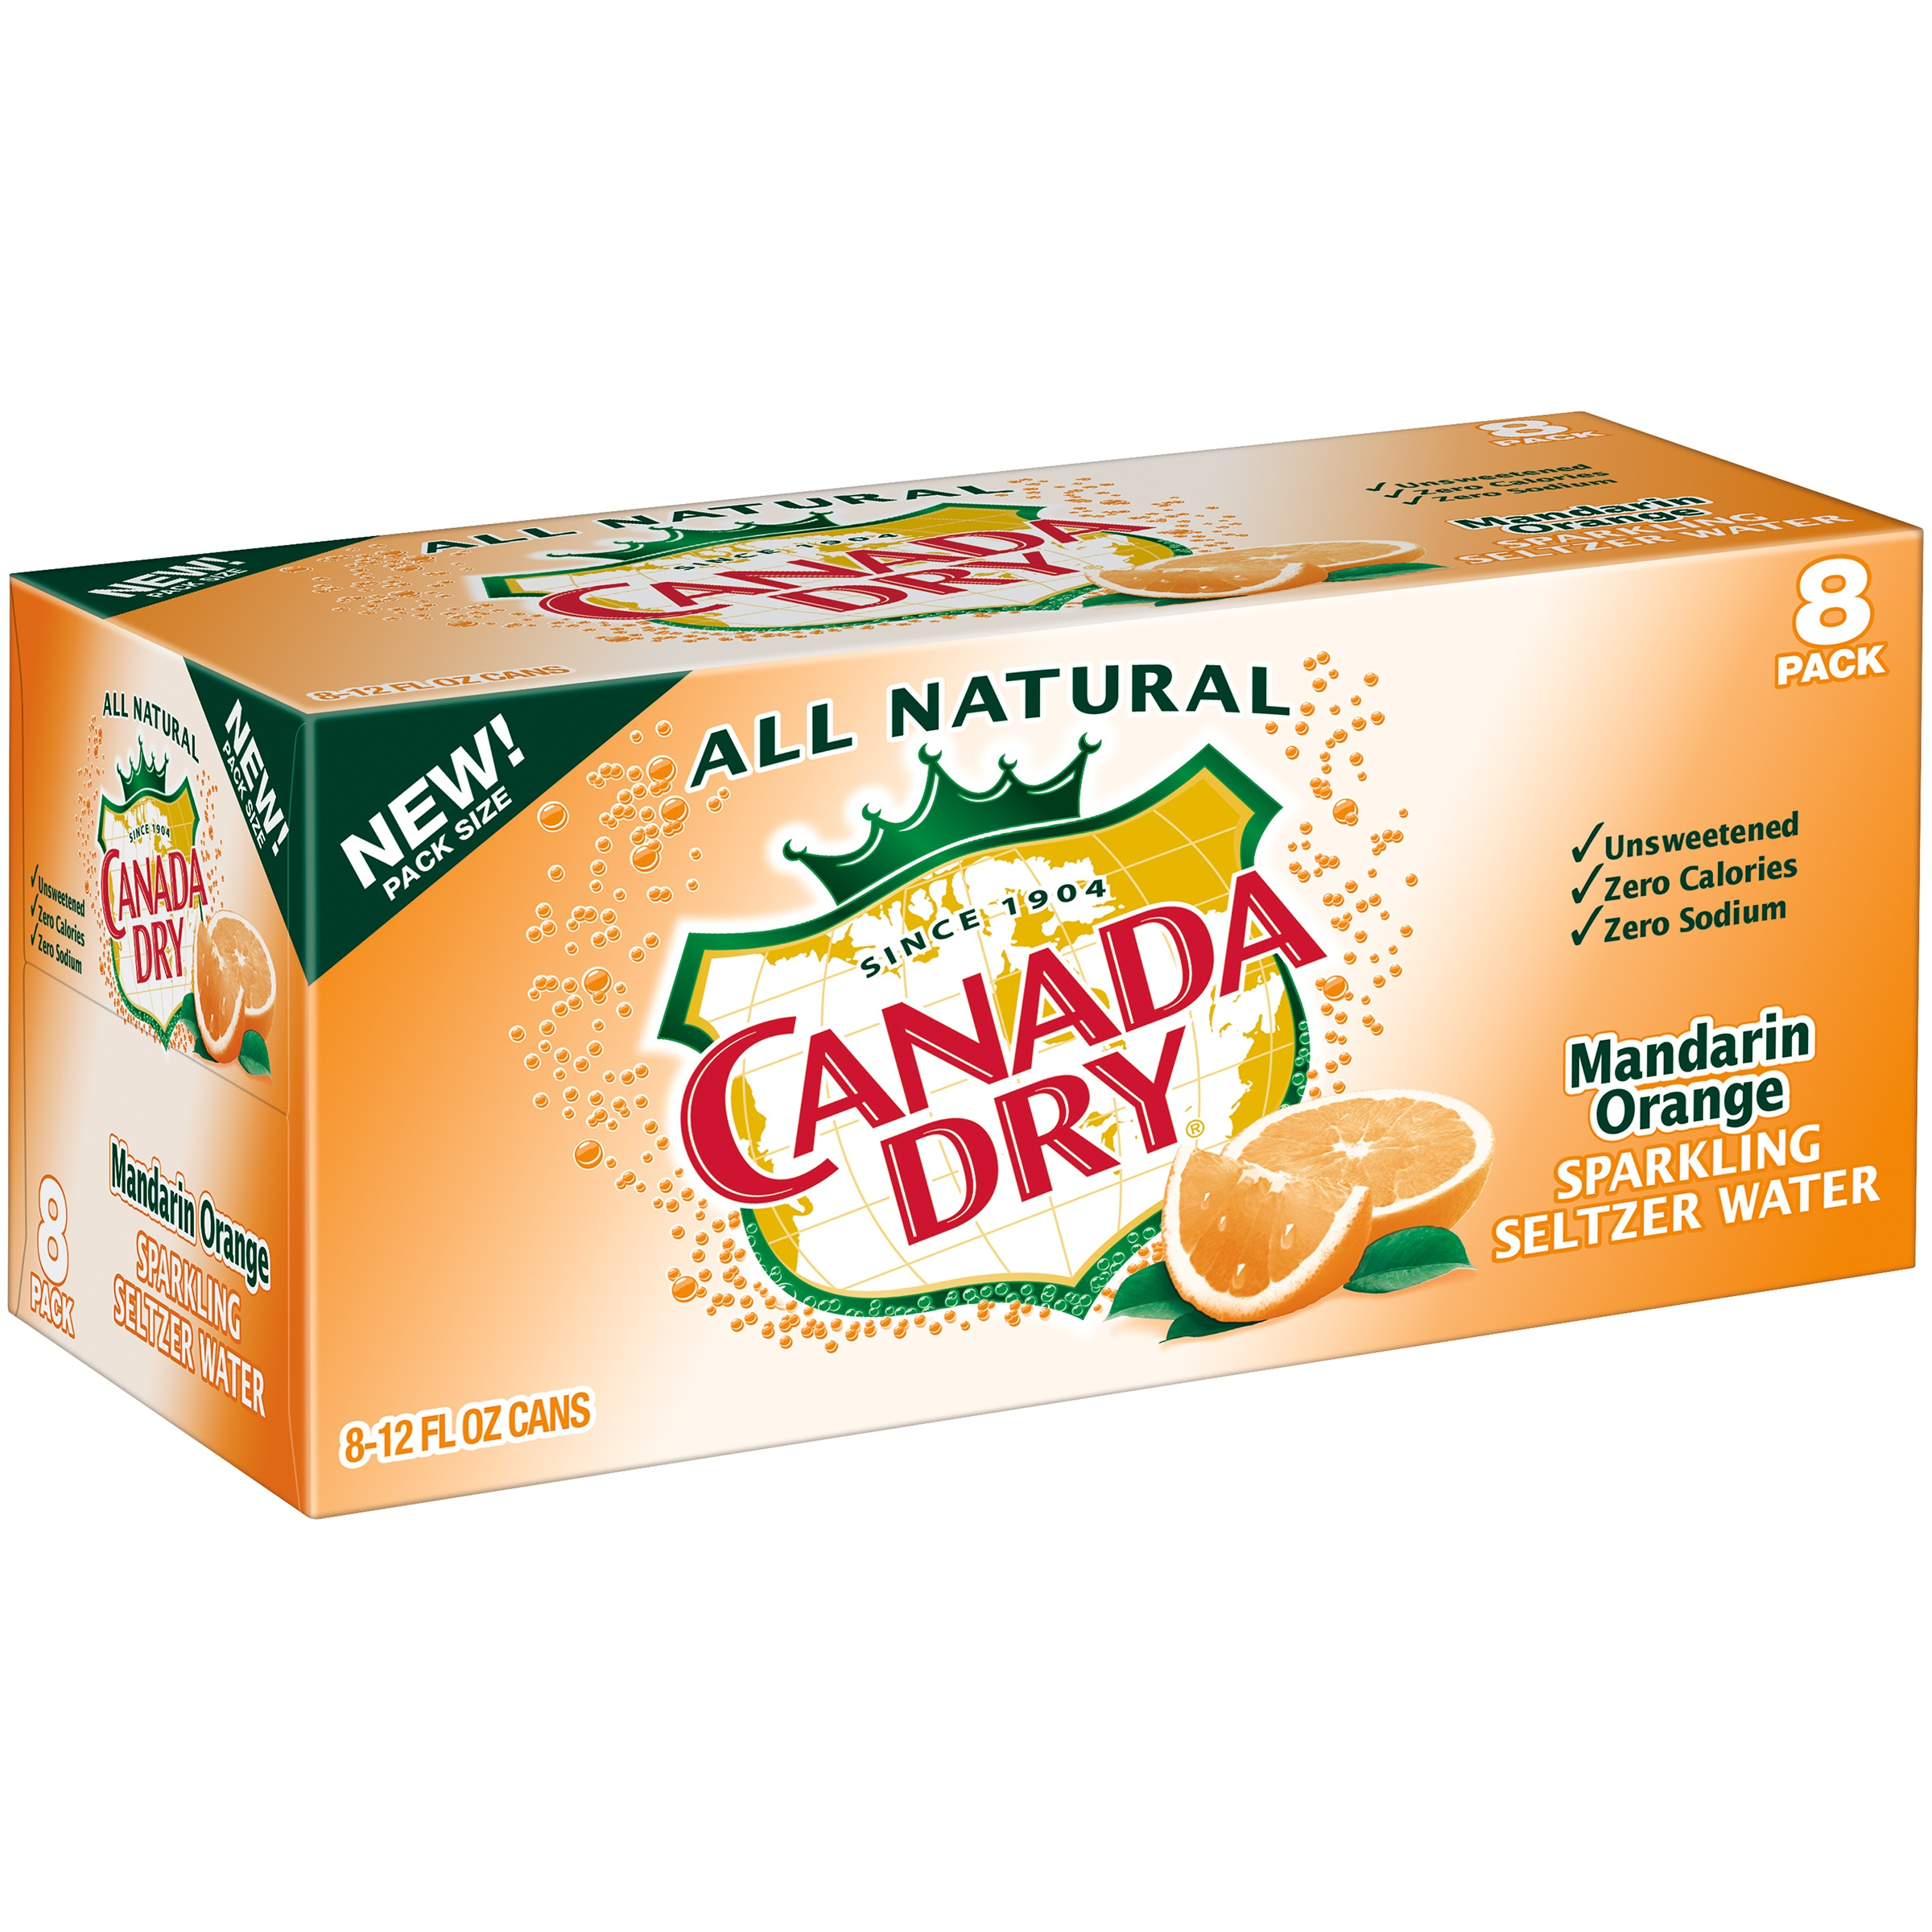 Canada Dry All Natural Sparkling Mandarin Orange Seltzer Water, 12 Fl. Oz., 8 Count